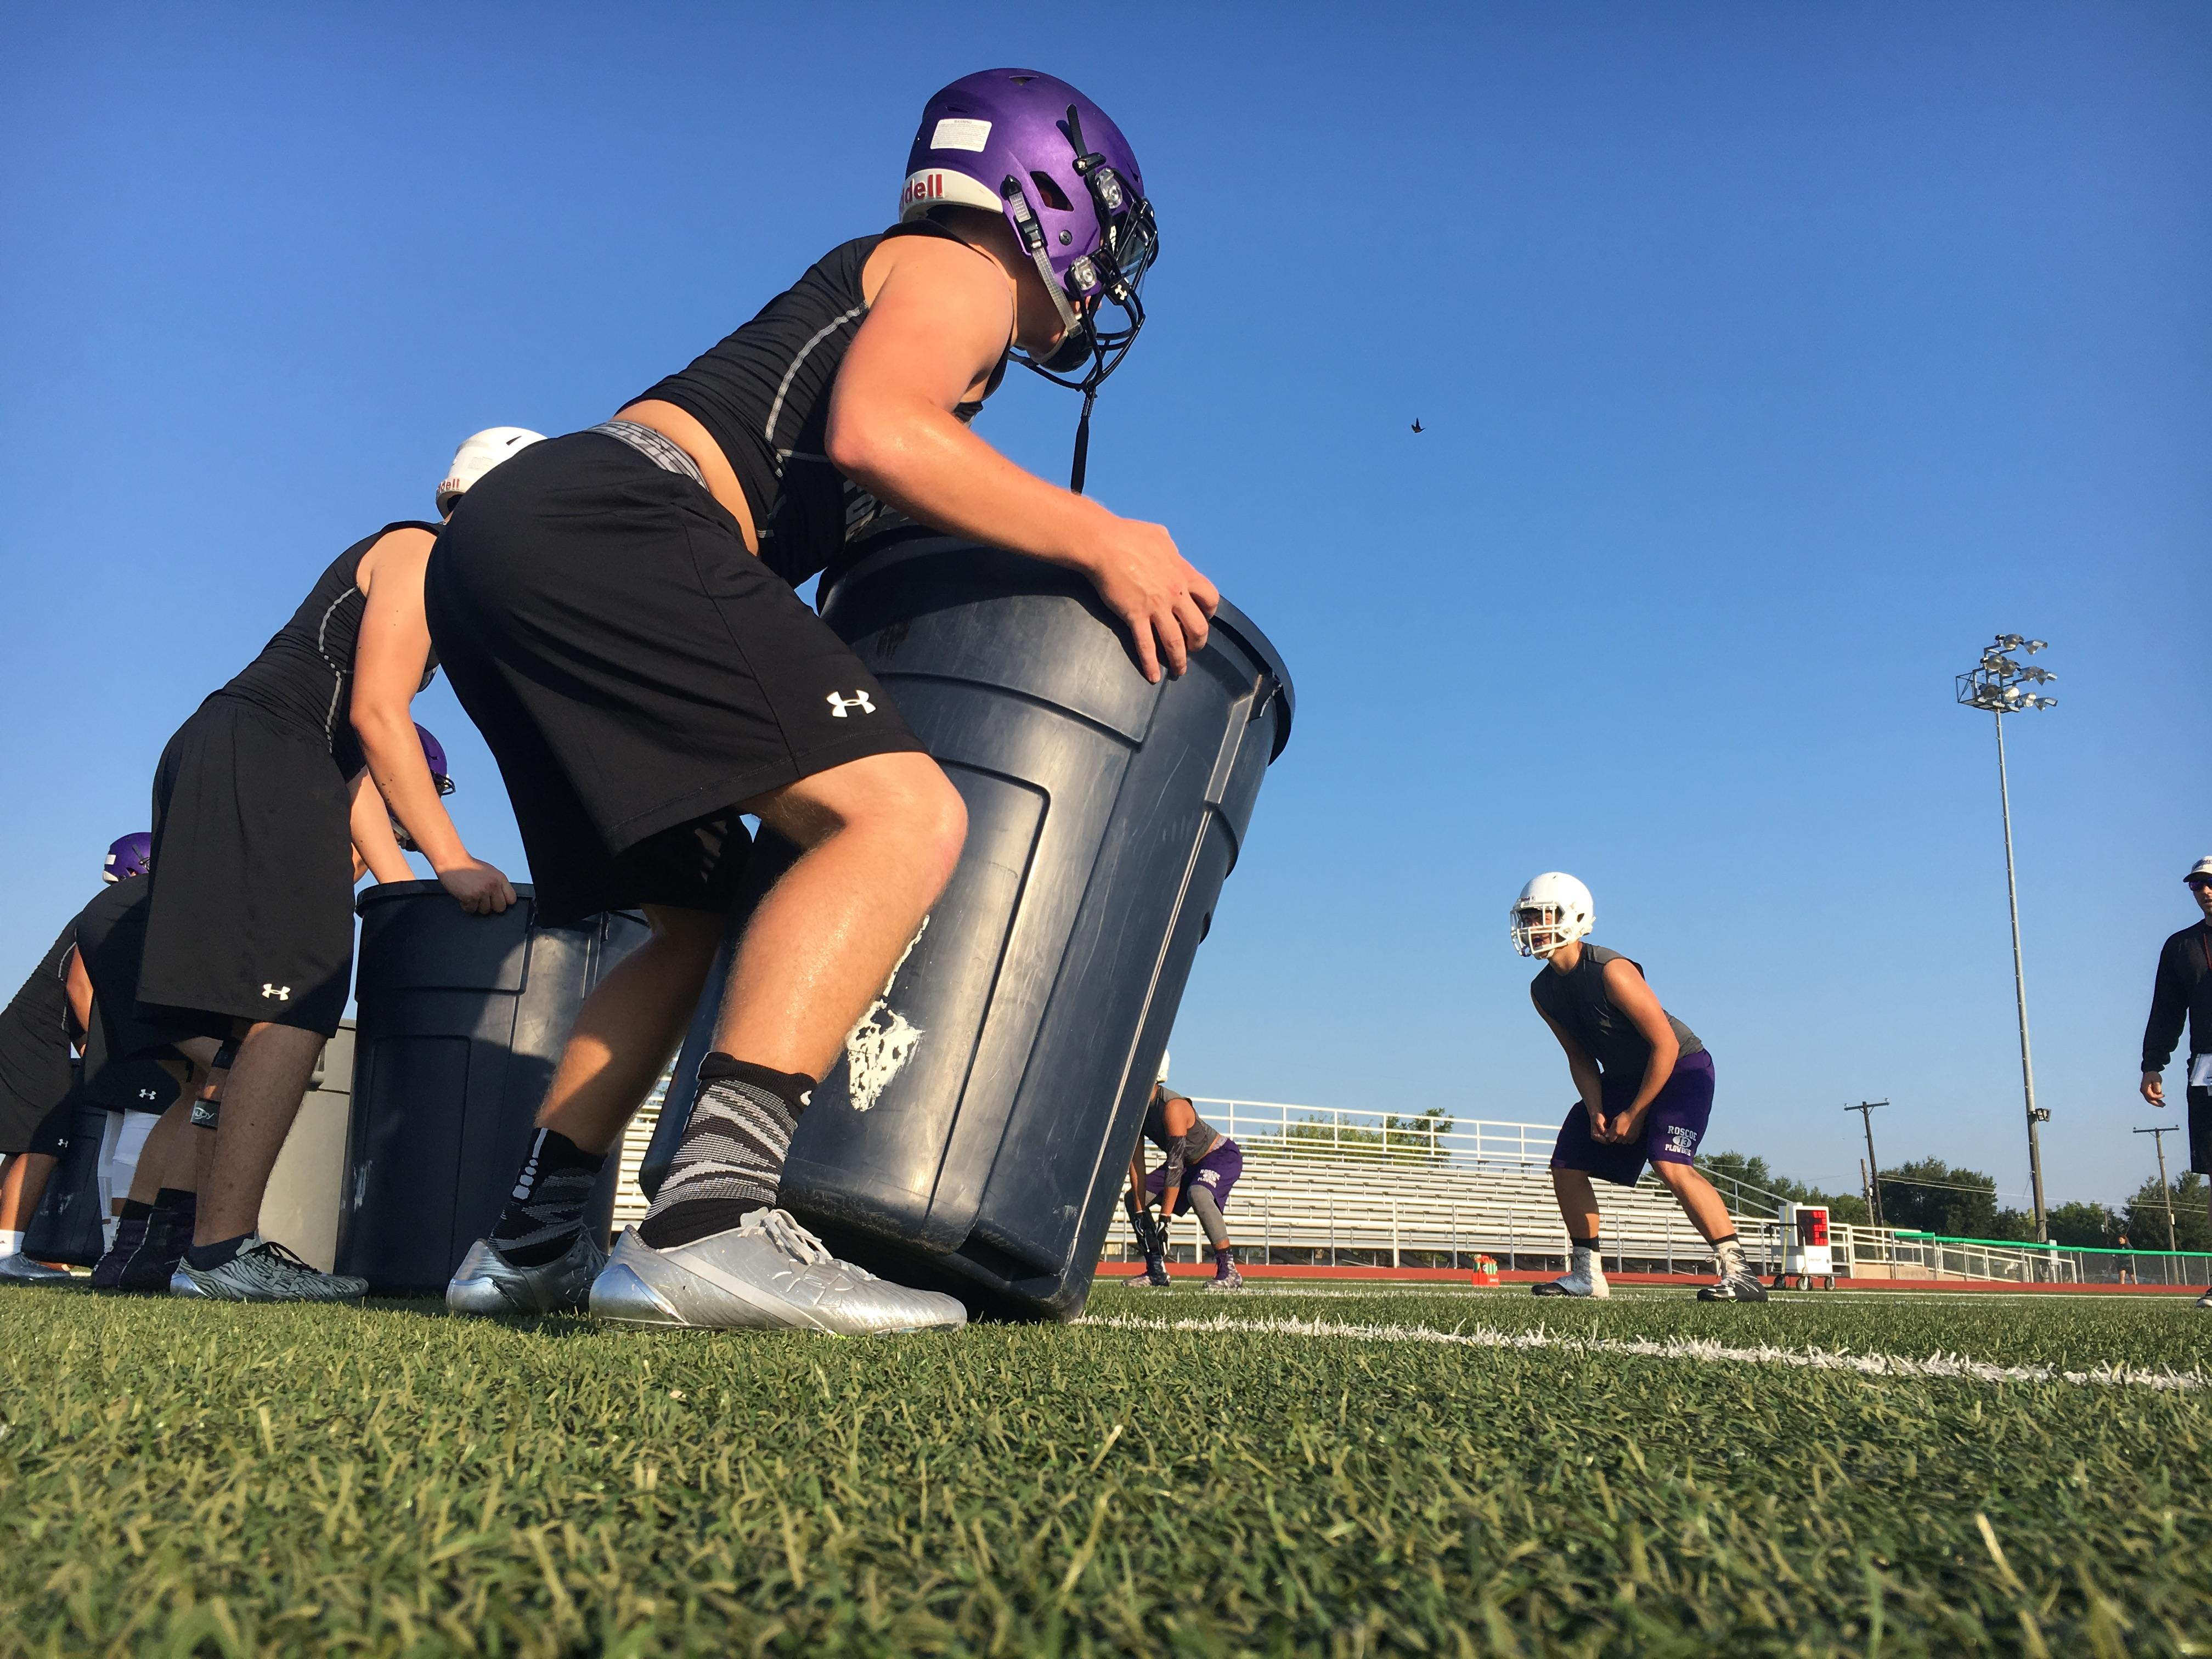 DAY 3: High school football practice -- Roscoe High School (Photos by Chris Wilner& Evan Nemec)